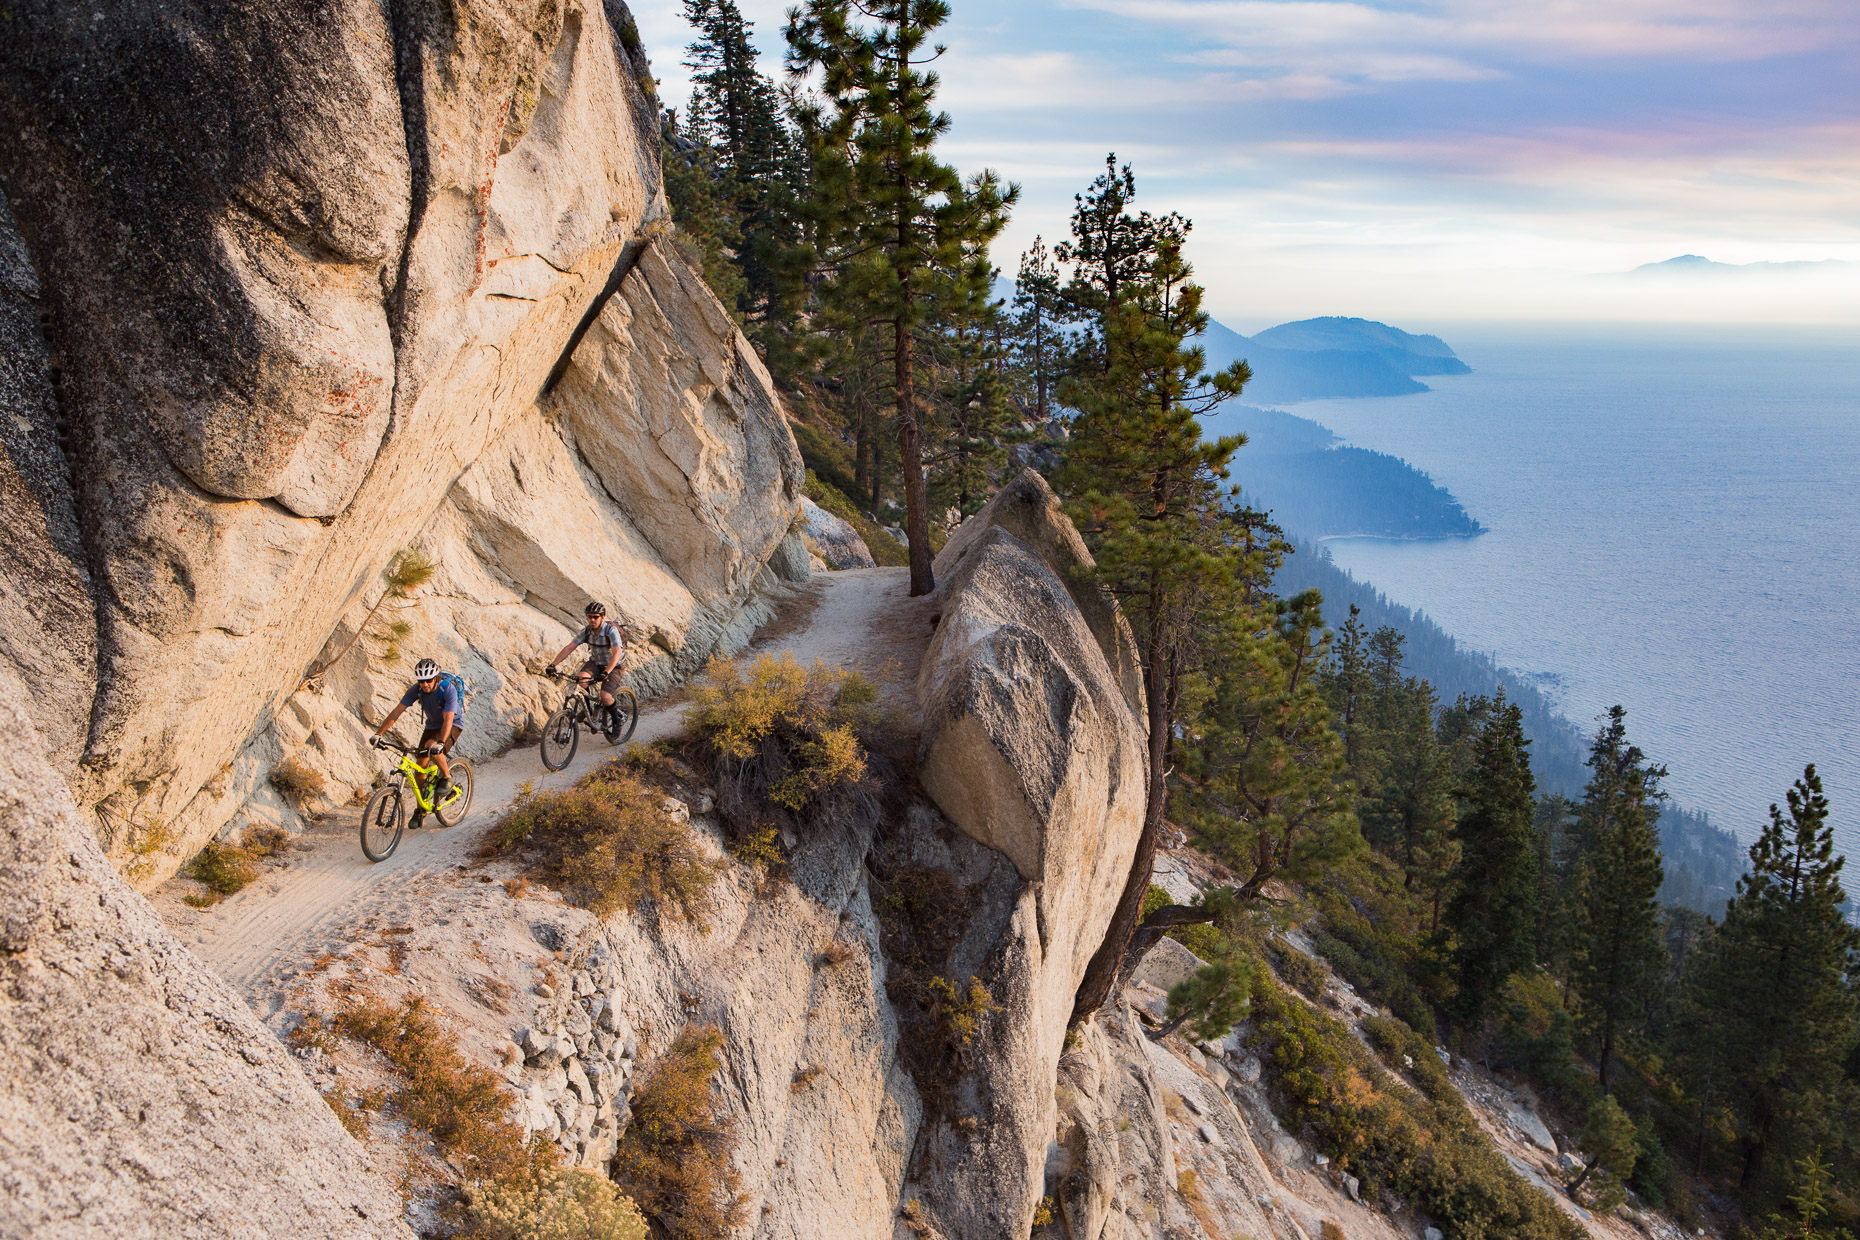 Mountain bikers brave the edge of the legendary Flume Trail at Lake Tahoe